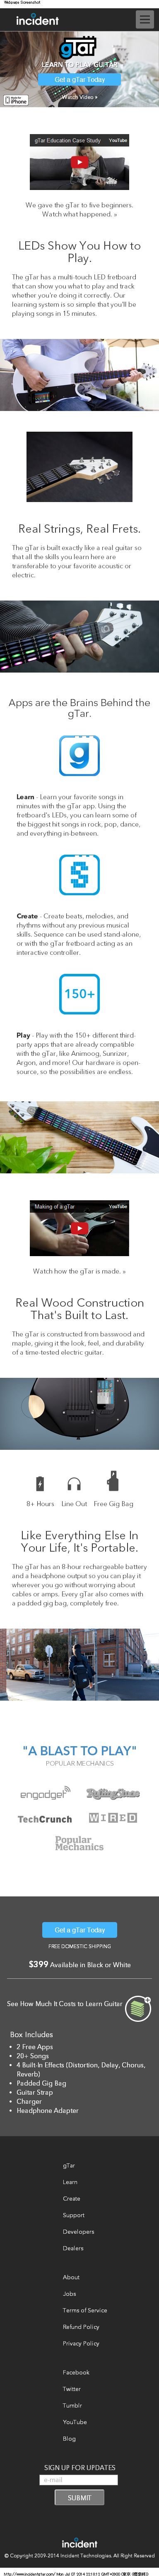 The gTar by Incident - Learn, Play, Create